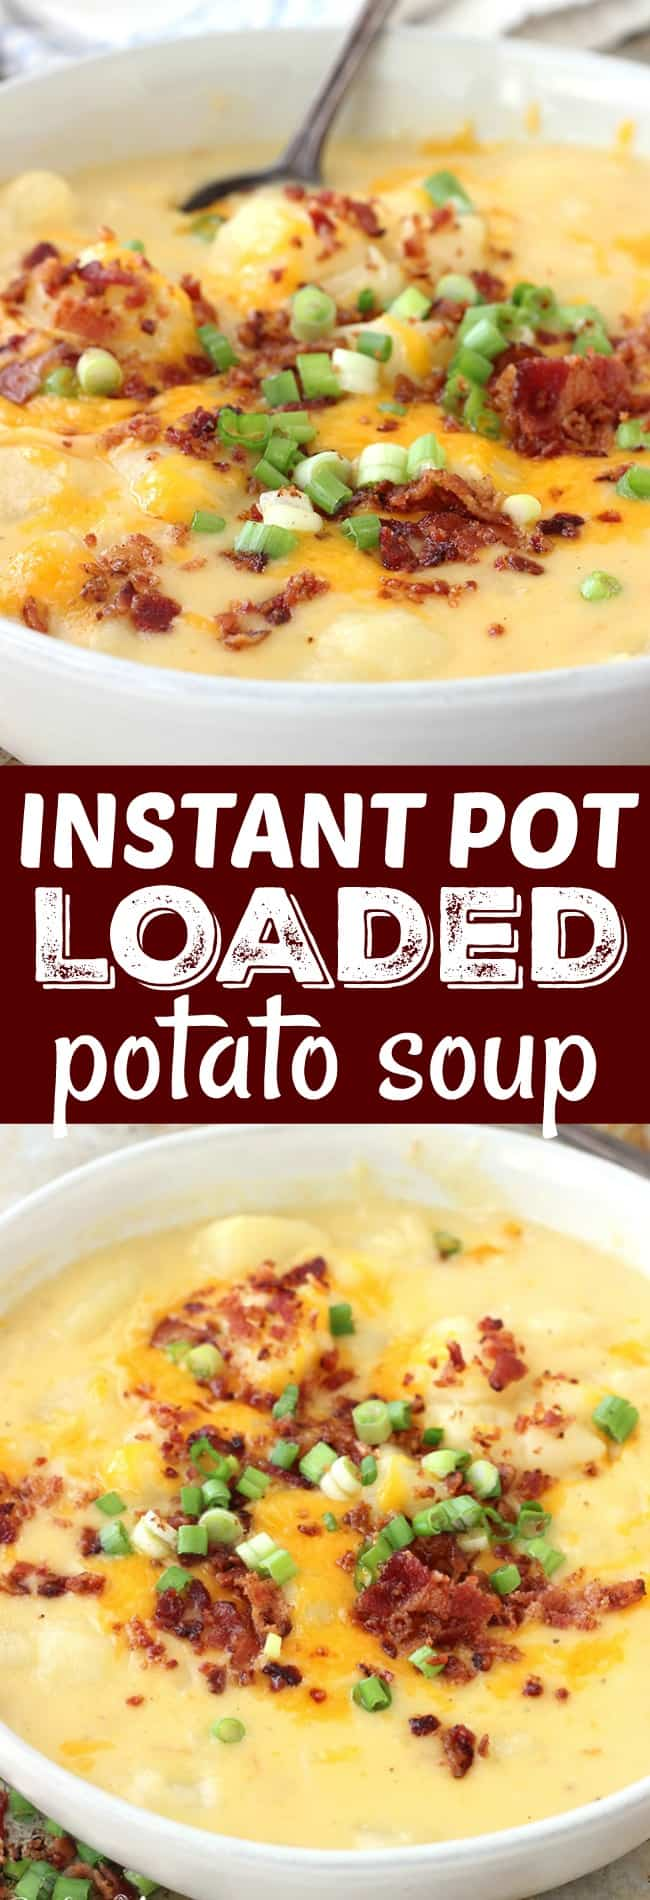 My family LOVES this Instant Pot Loaded Potato Soup. It's so creamy and full of flavor; plus ready in a flash!